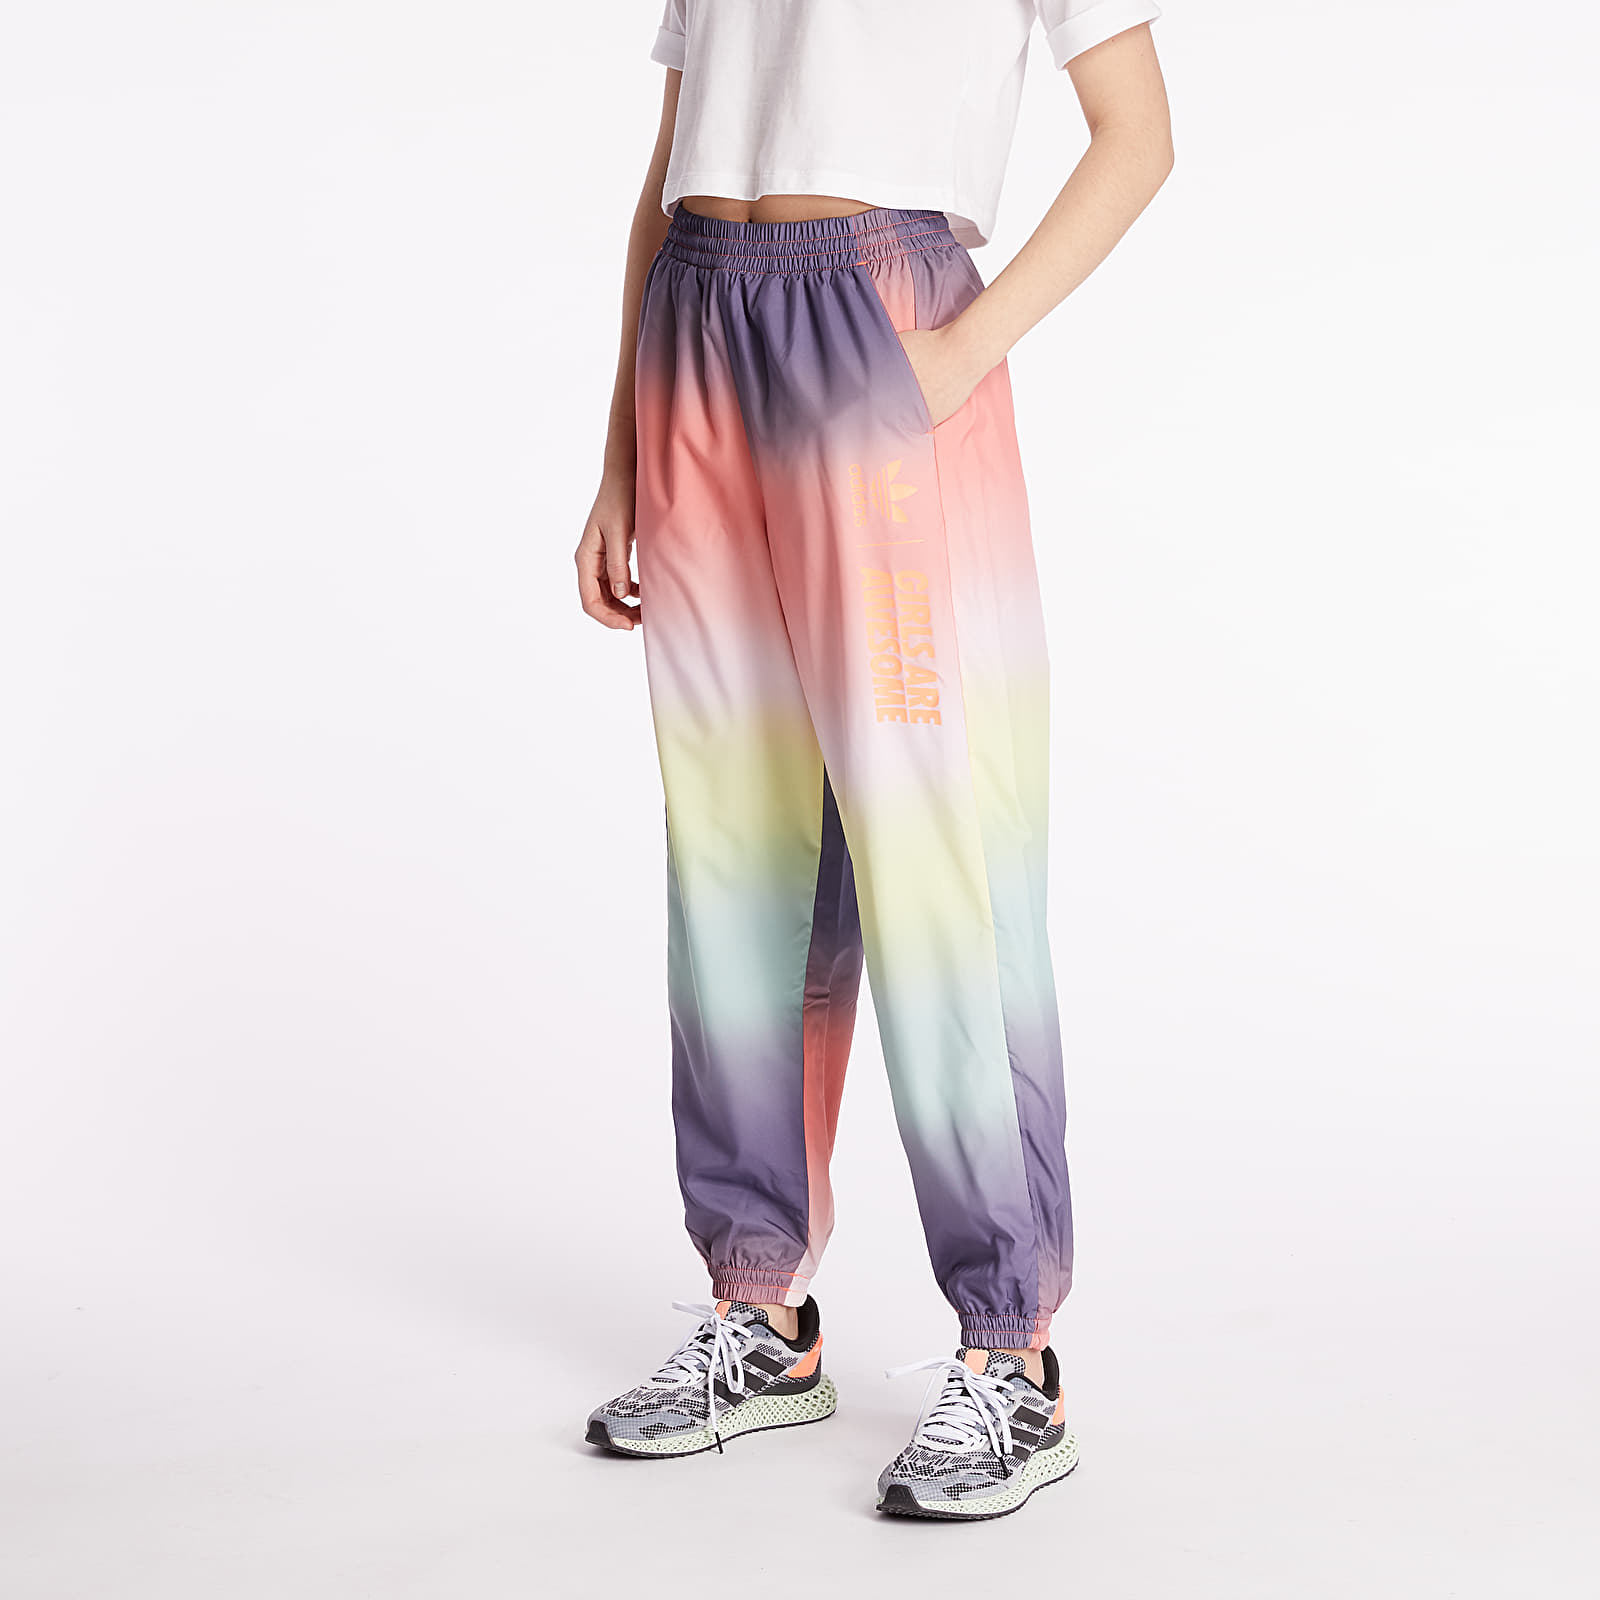 Pants and jeans adidas Track Pants Multicolor